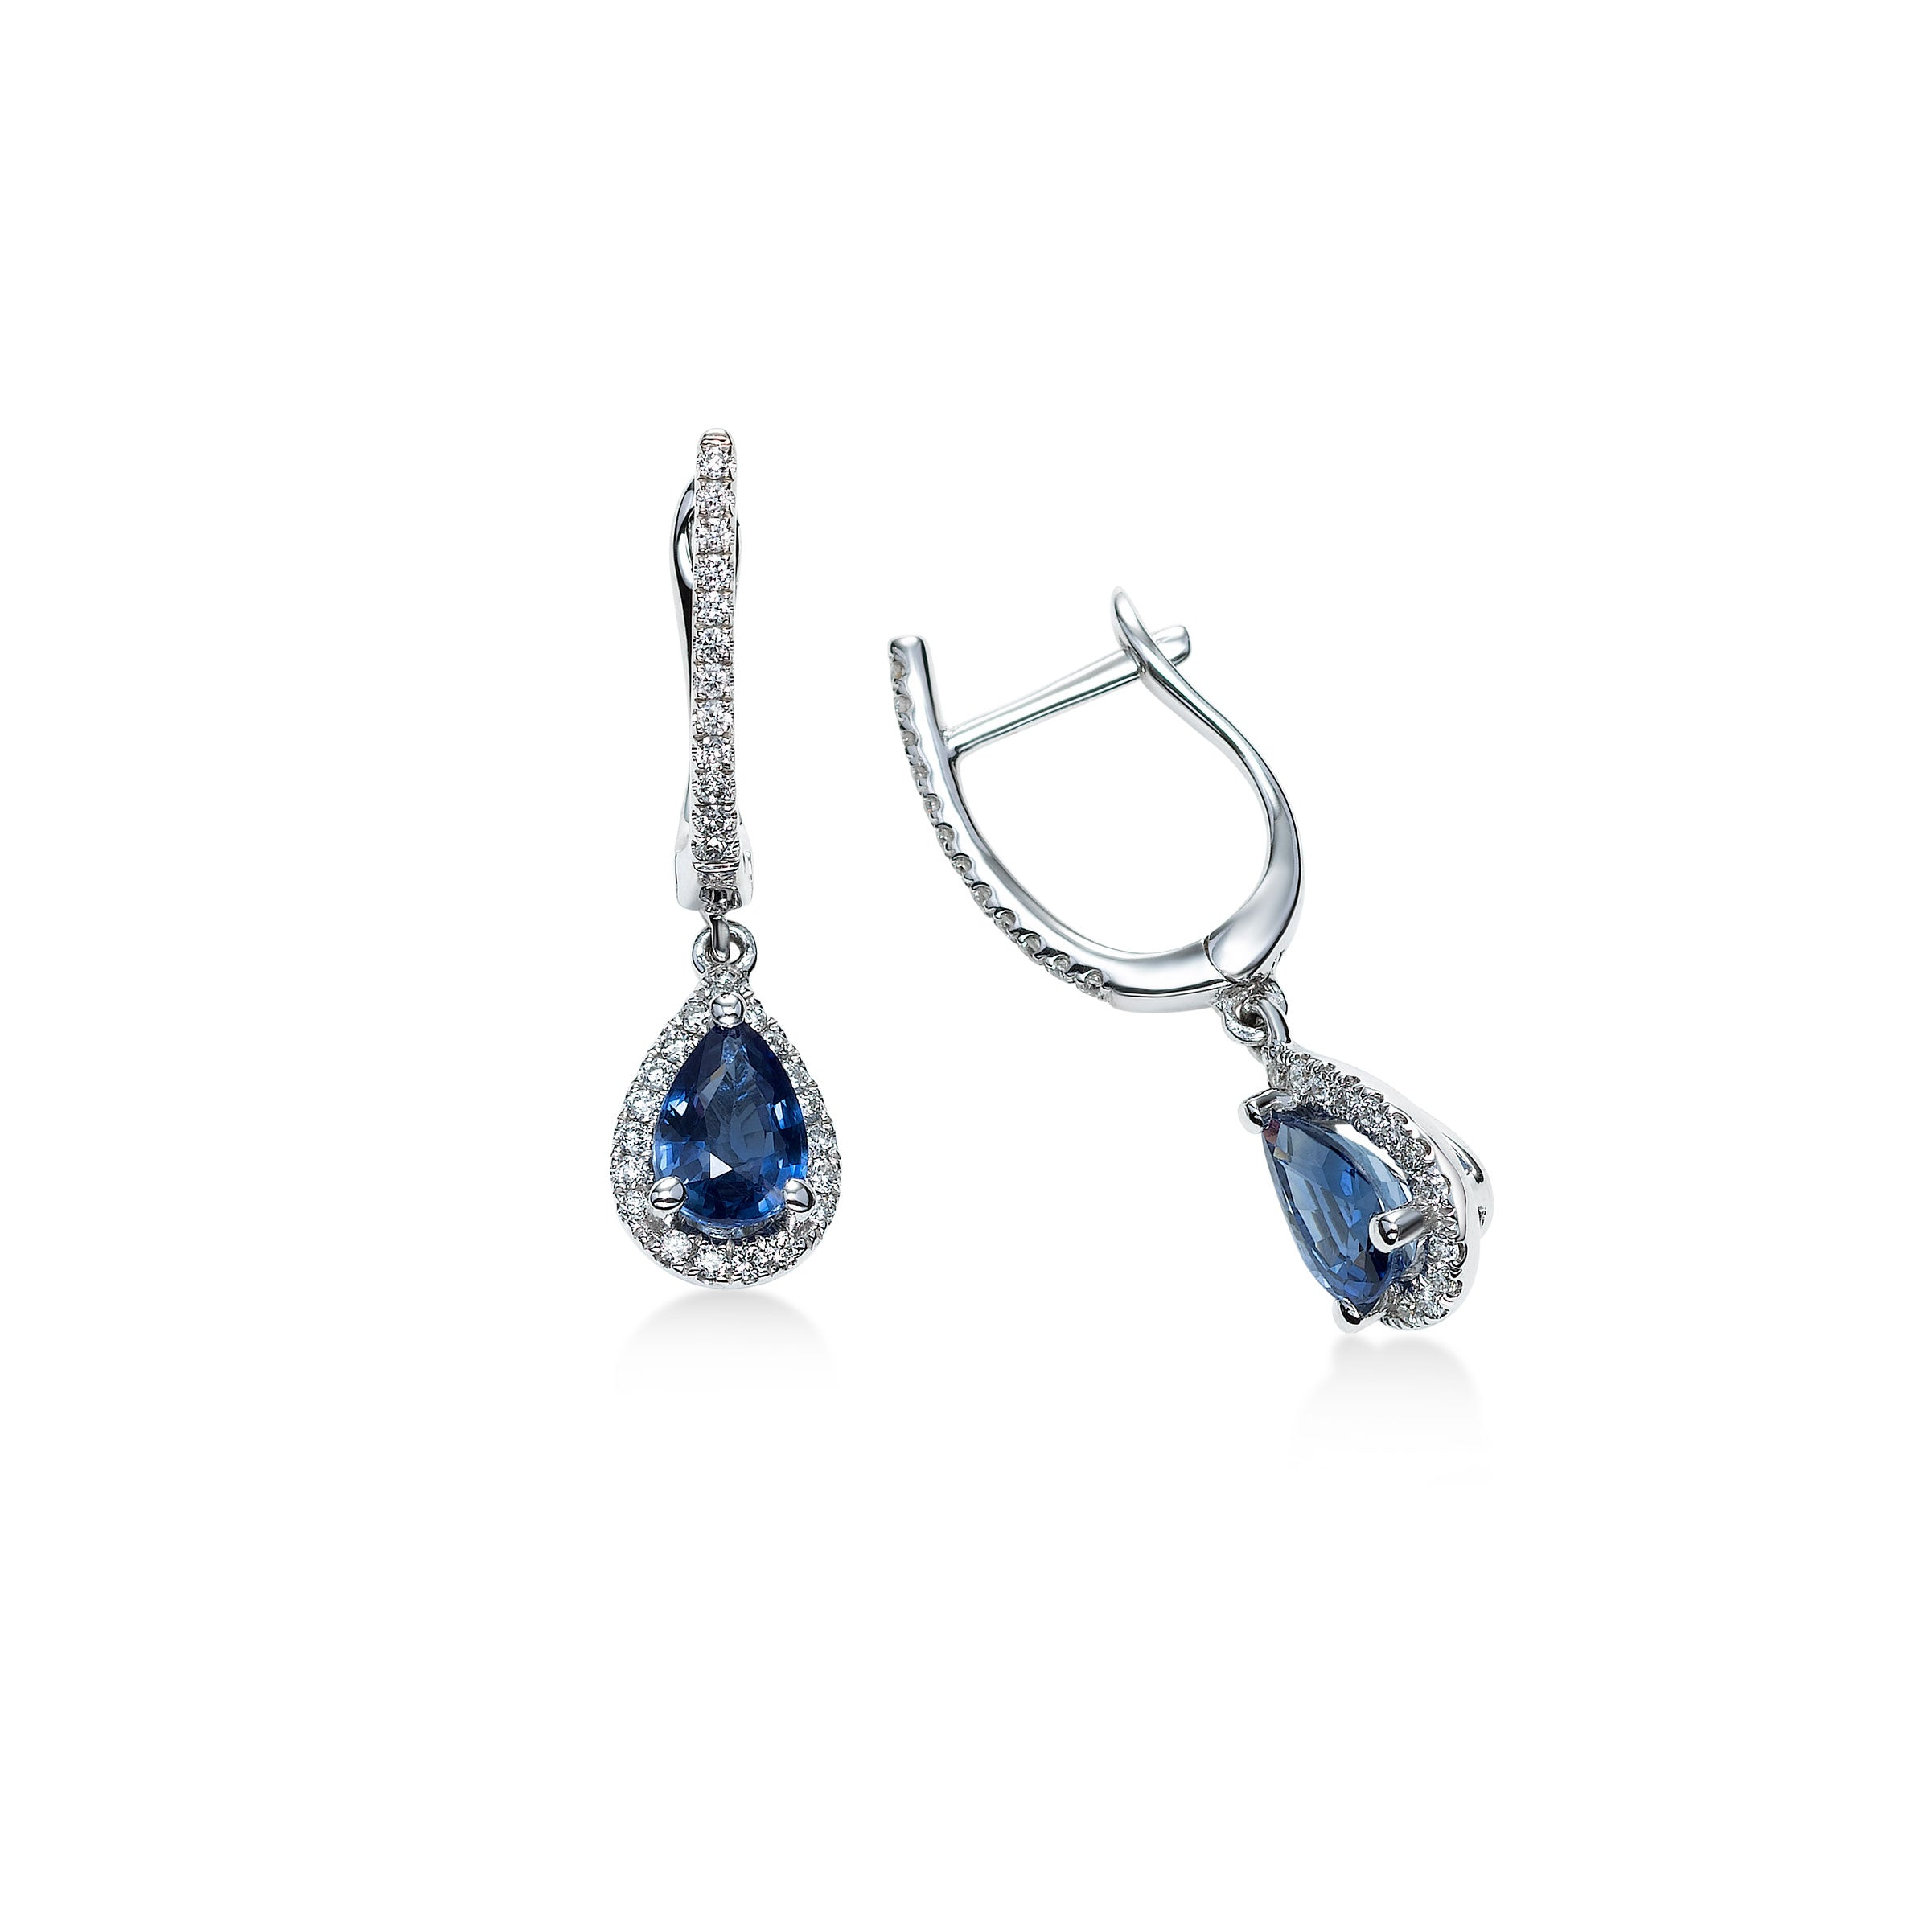 Pear Shaped Sapphire and Diamond Drop Earrings, 14K White Gold